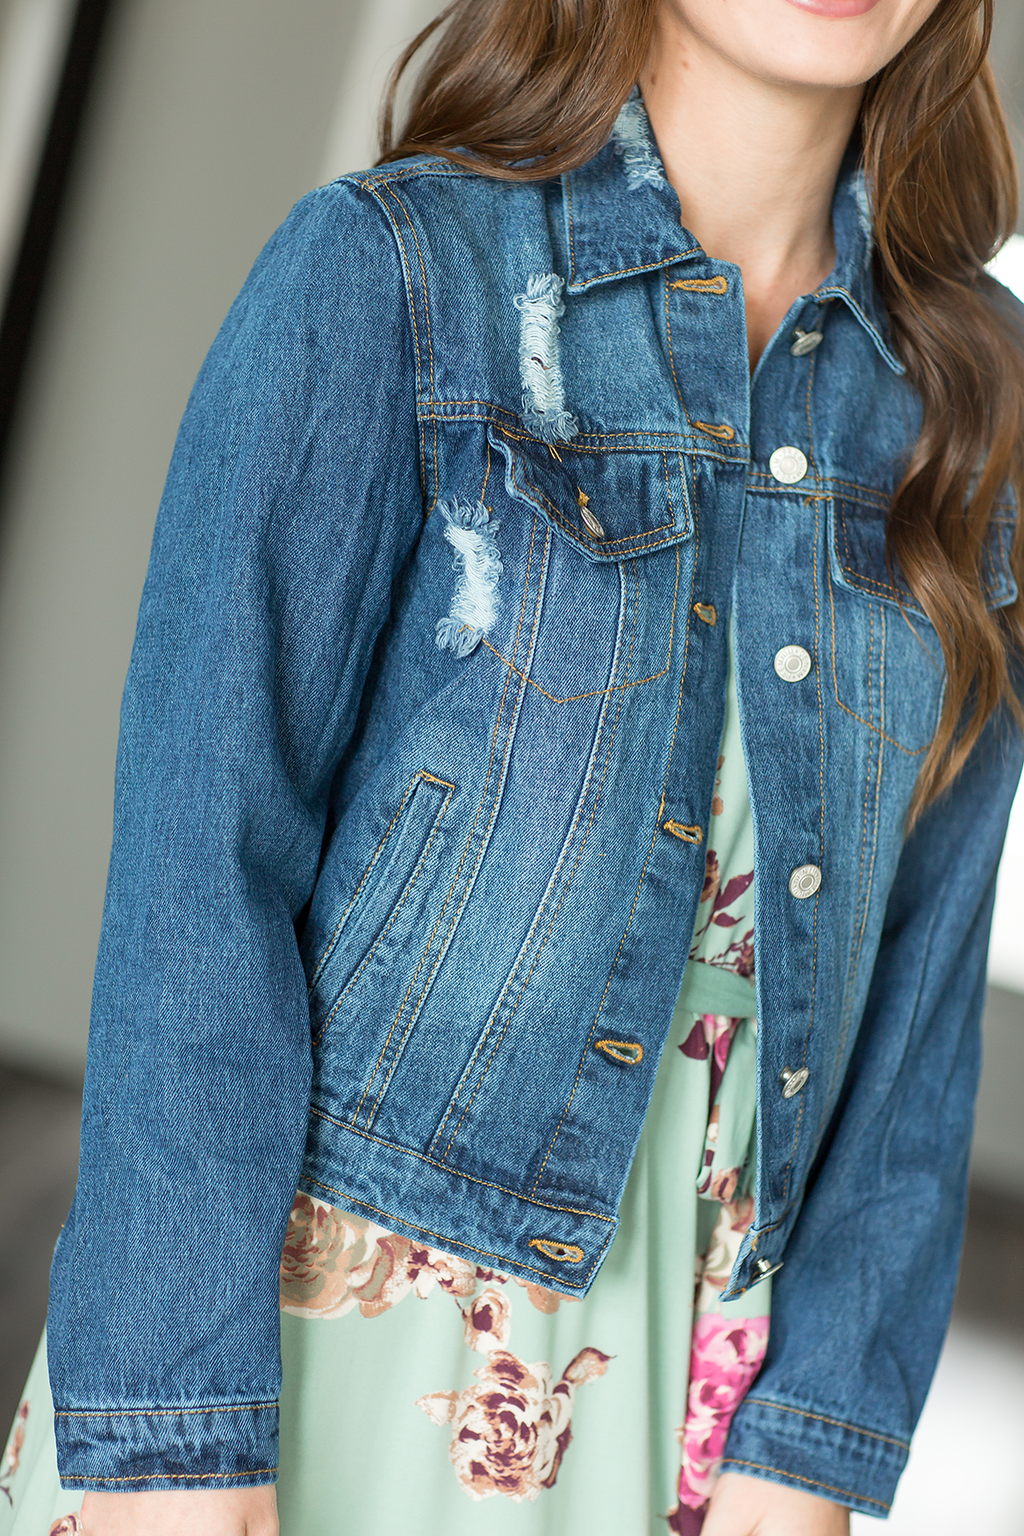 Fair Game Blue Denim Jacket